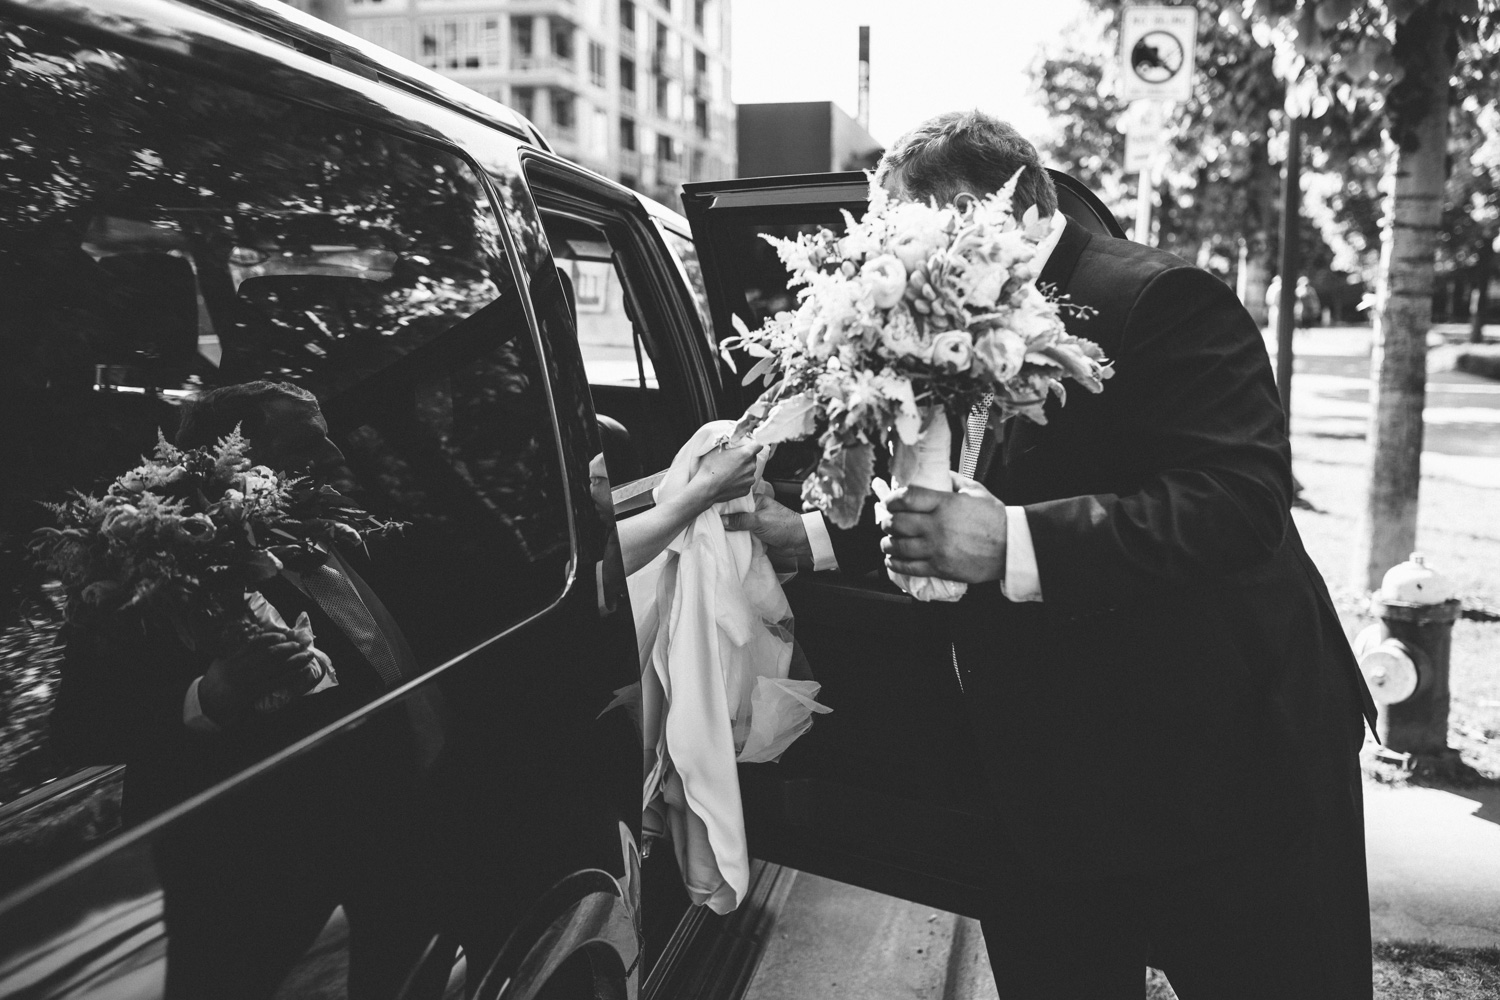 Brandon_Werth_Wedding_Gold_Medal_Park_Butcher_and_the_boar_030.jpg